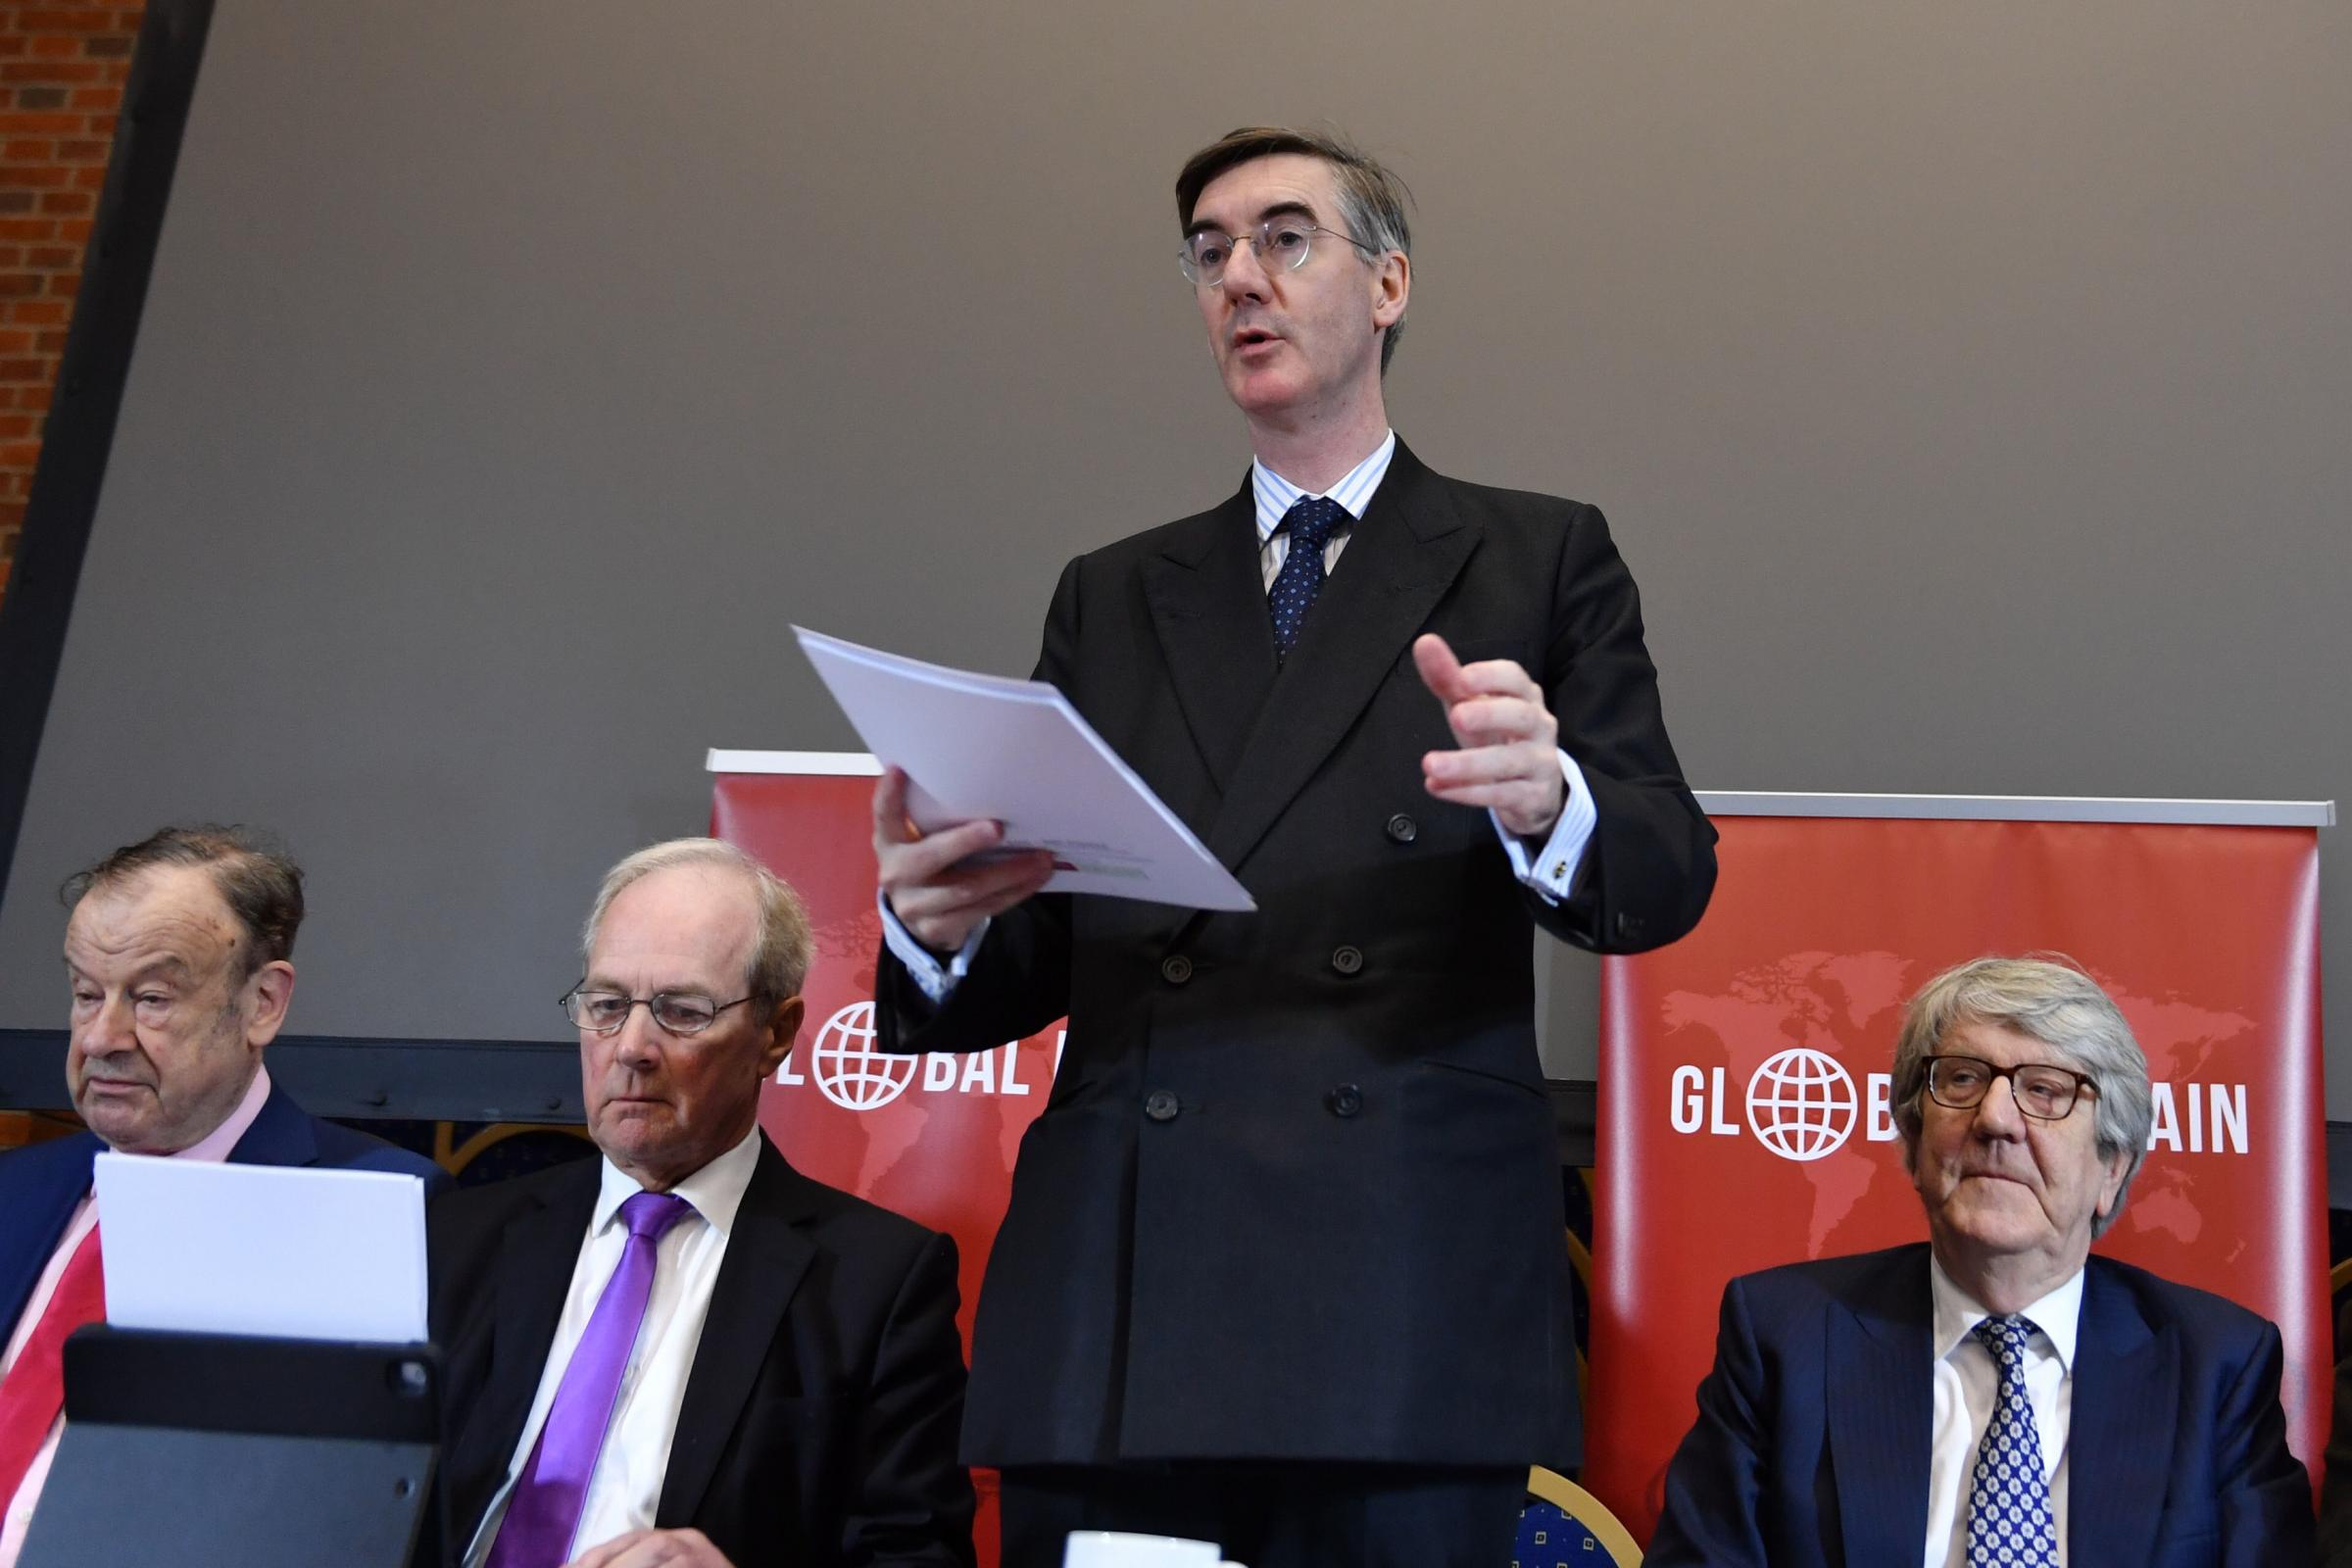 BIG SAY: Jacob Rees-Mogg and the ERG committee could frustrate the Prime Minister's efforts. PICTURE: John Stillwell/PA Wire